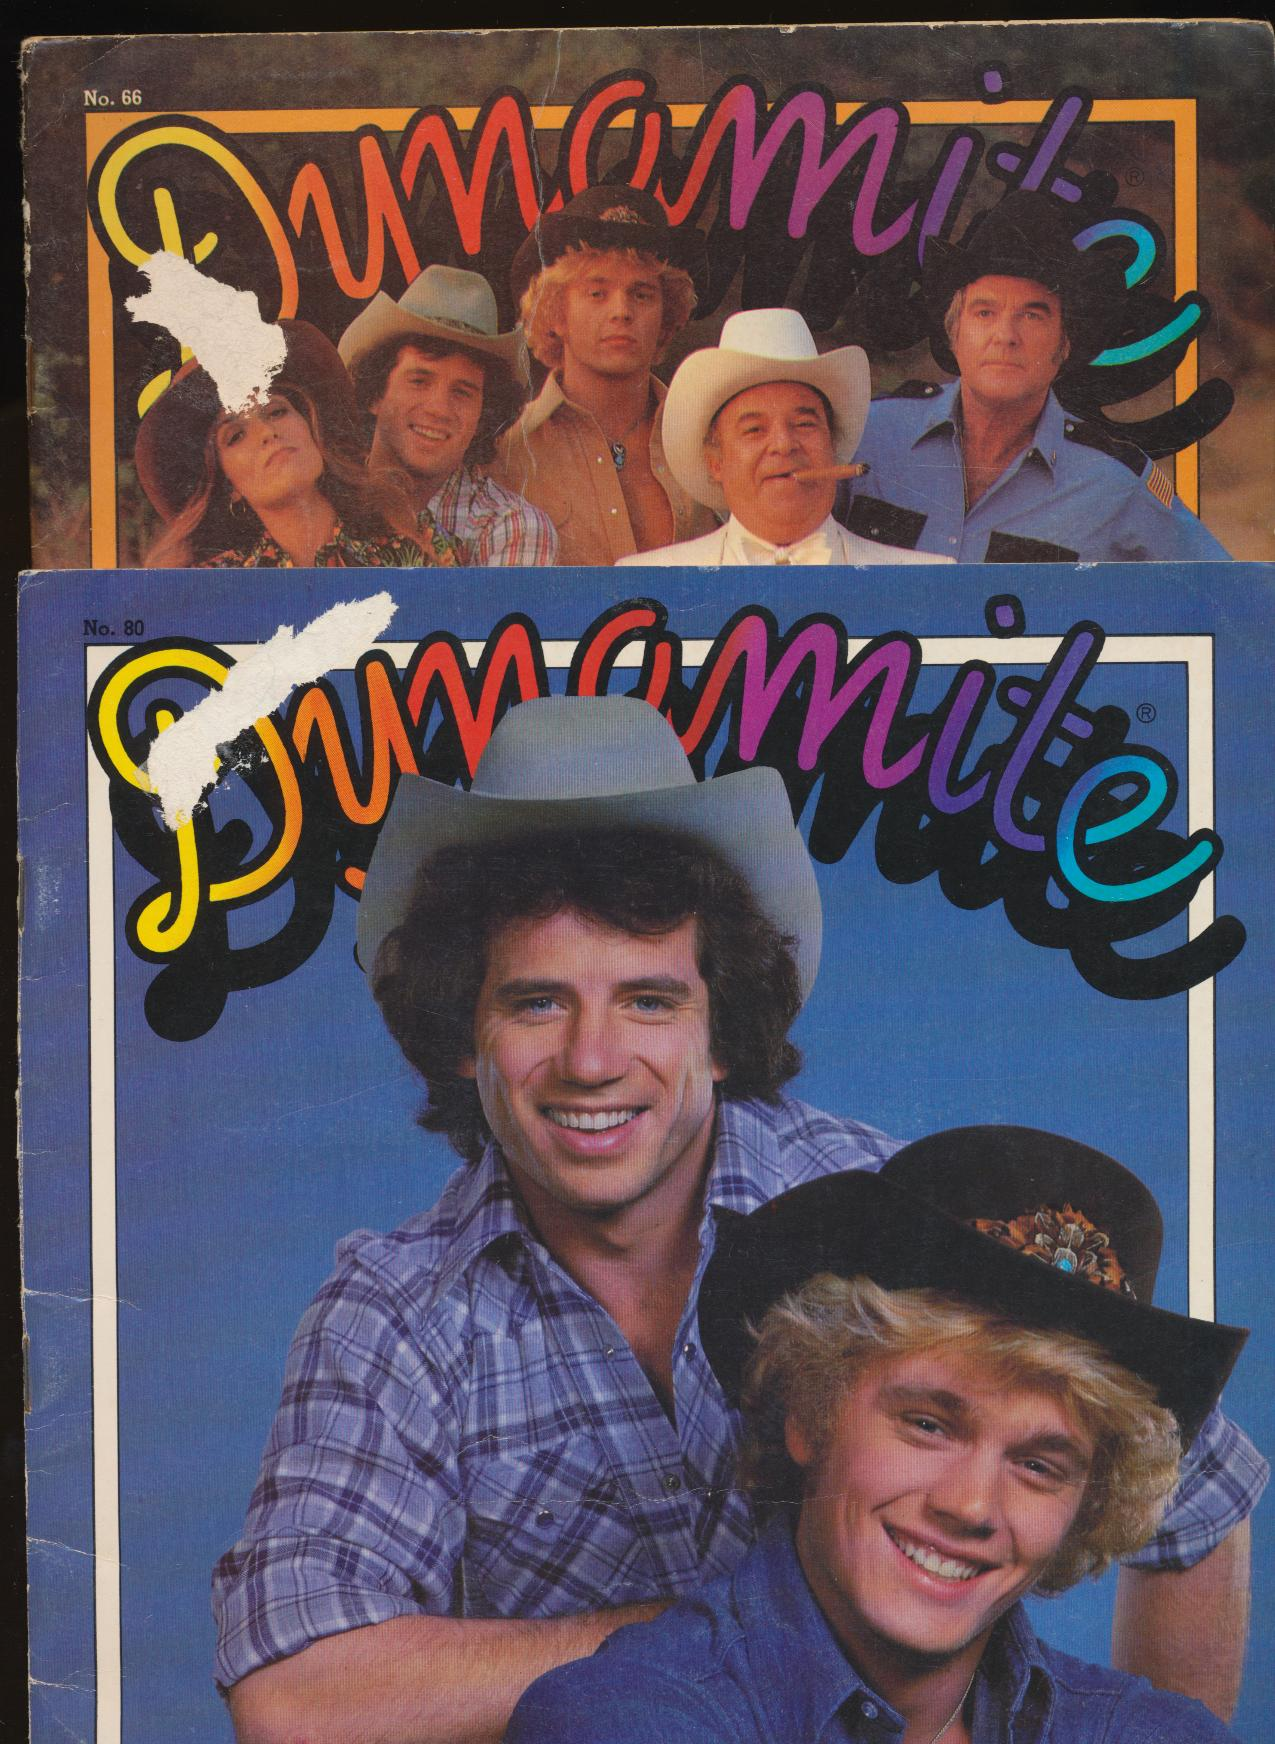 1979-81 Dynamite Magazines - Dukes Of Hazzard Cover Features